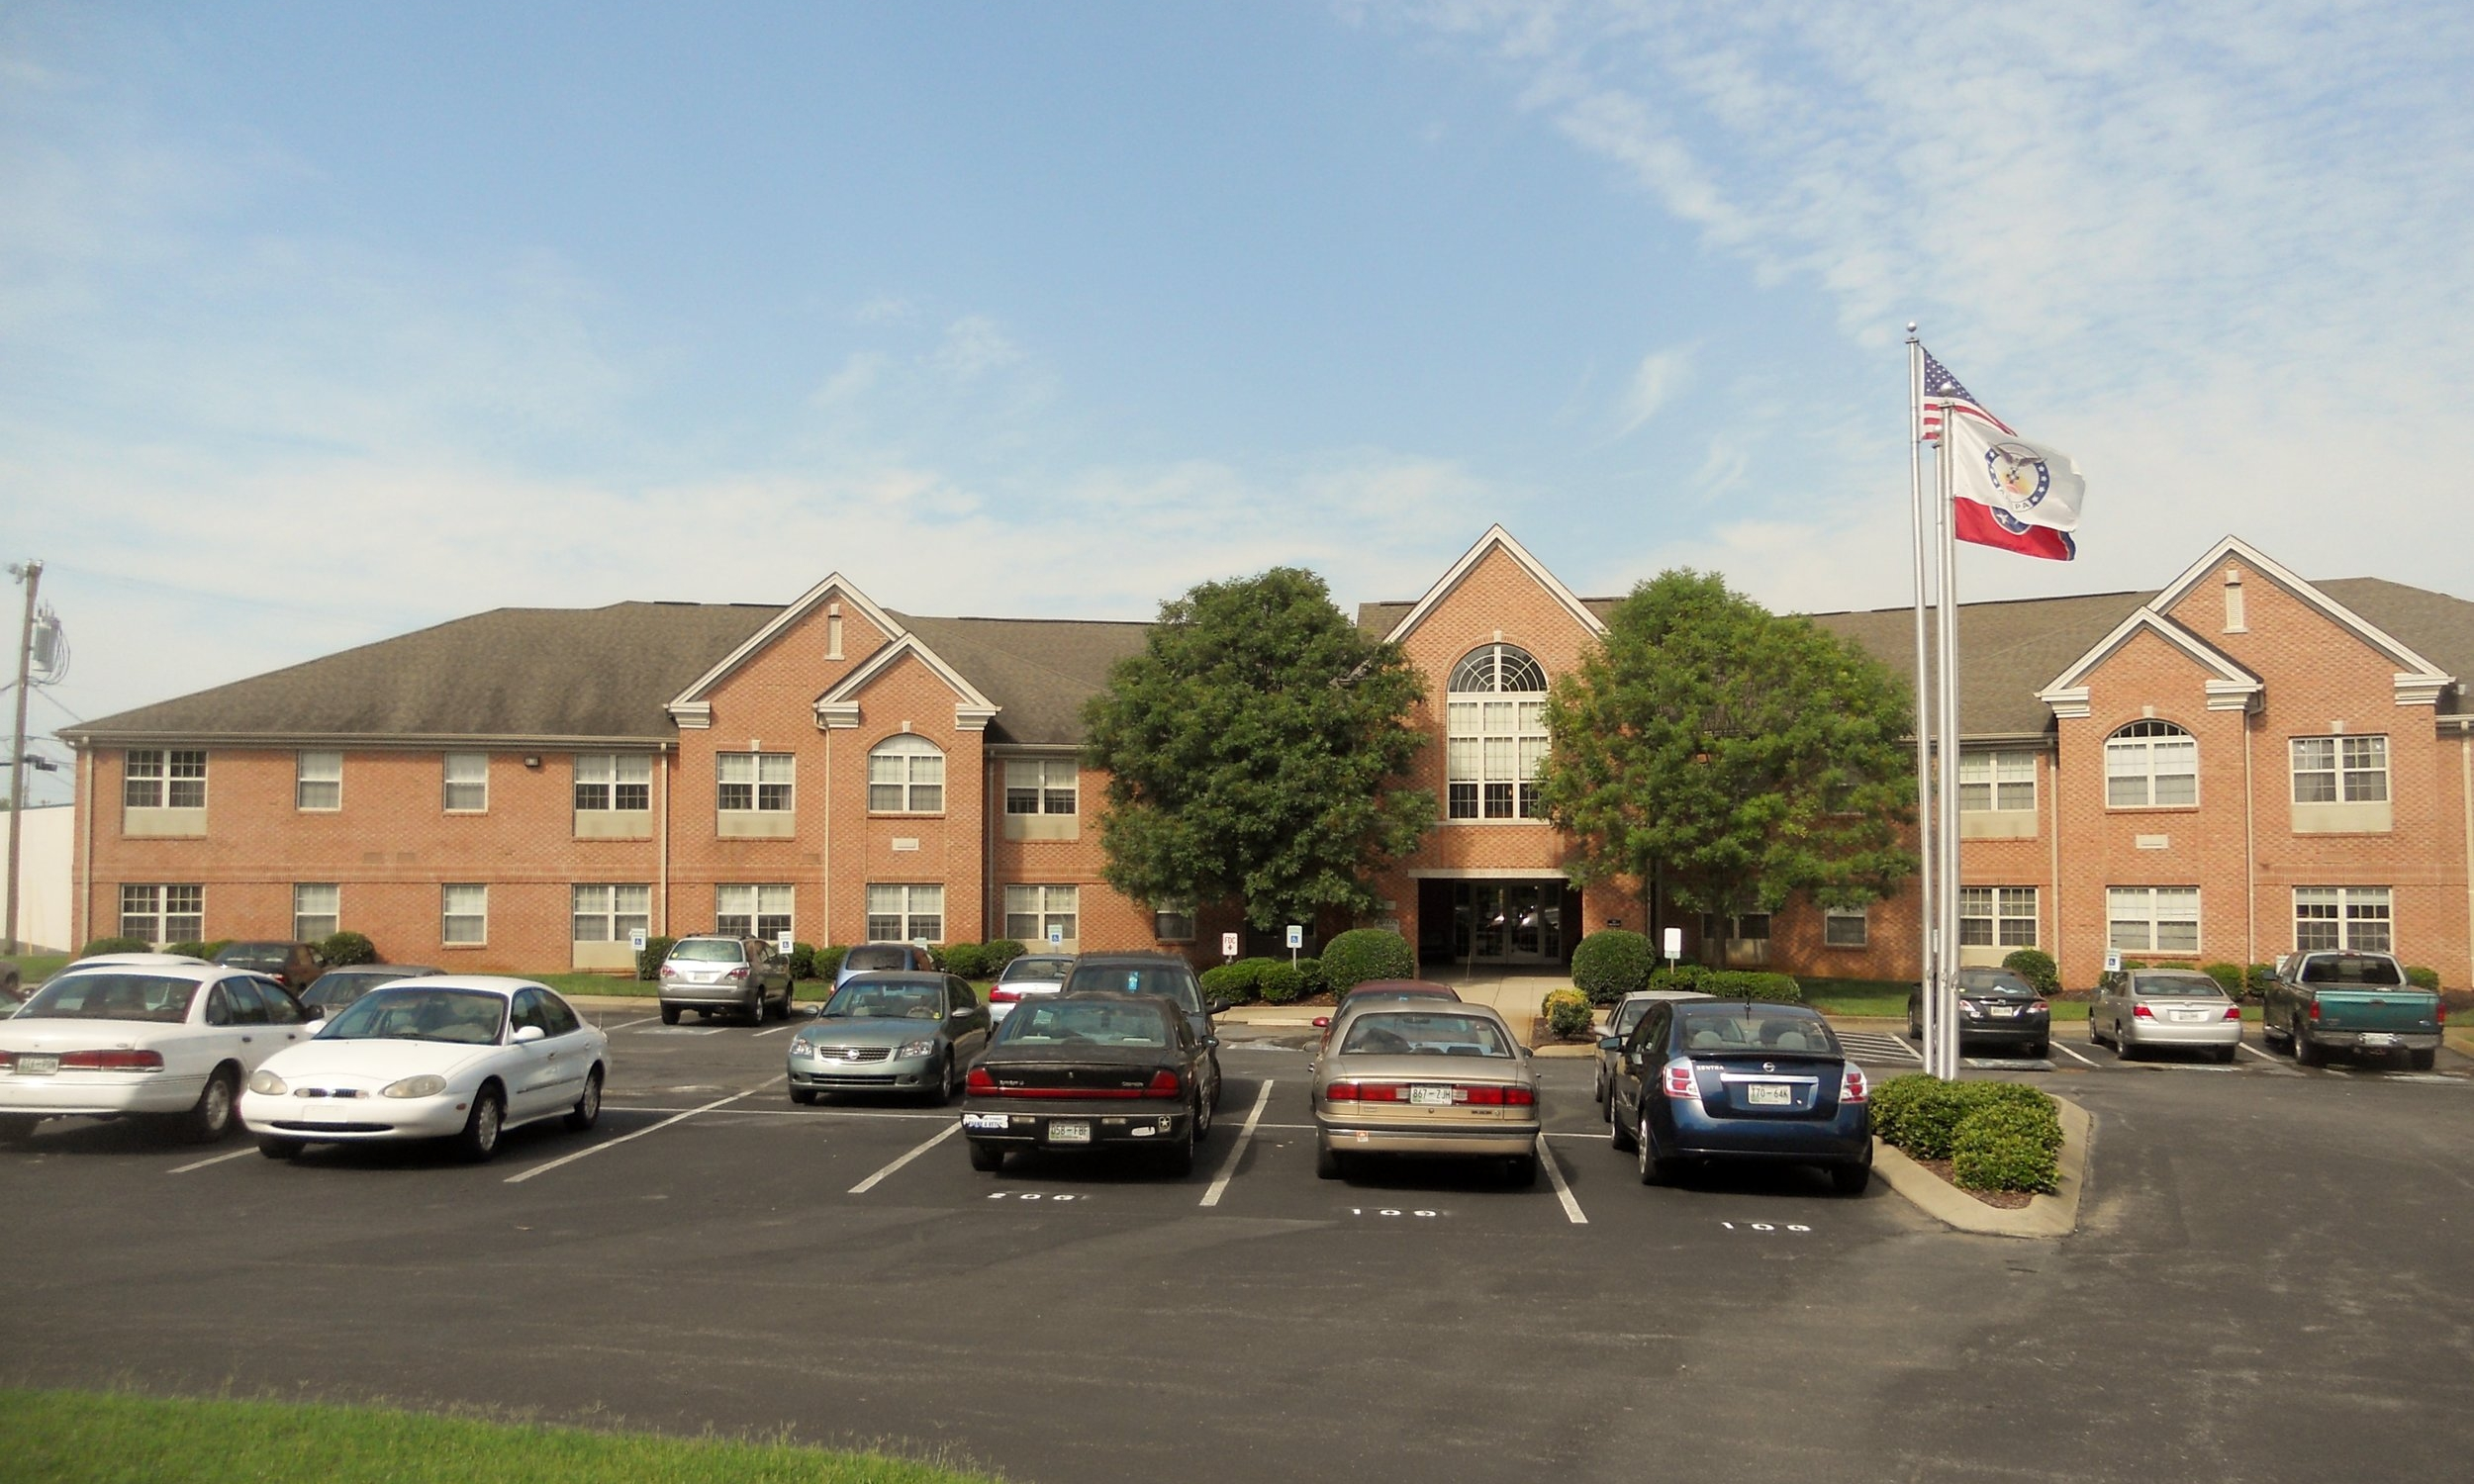 AHEPA 343 Senior Apartments - 121 Mason CircleLa Vergne, TN 37086(615) 793-4272TTY: (800) 848-0298 or 711info@ahepahousing.org